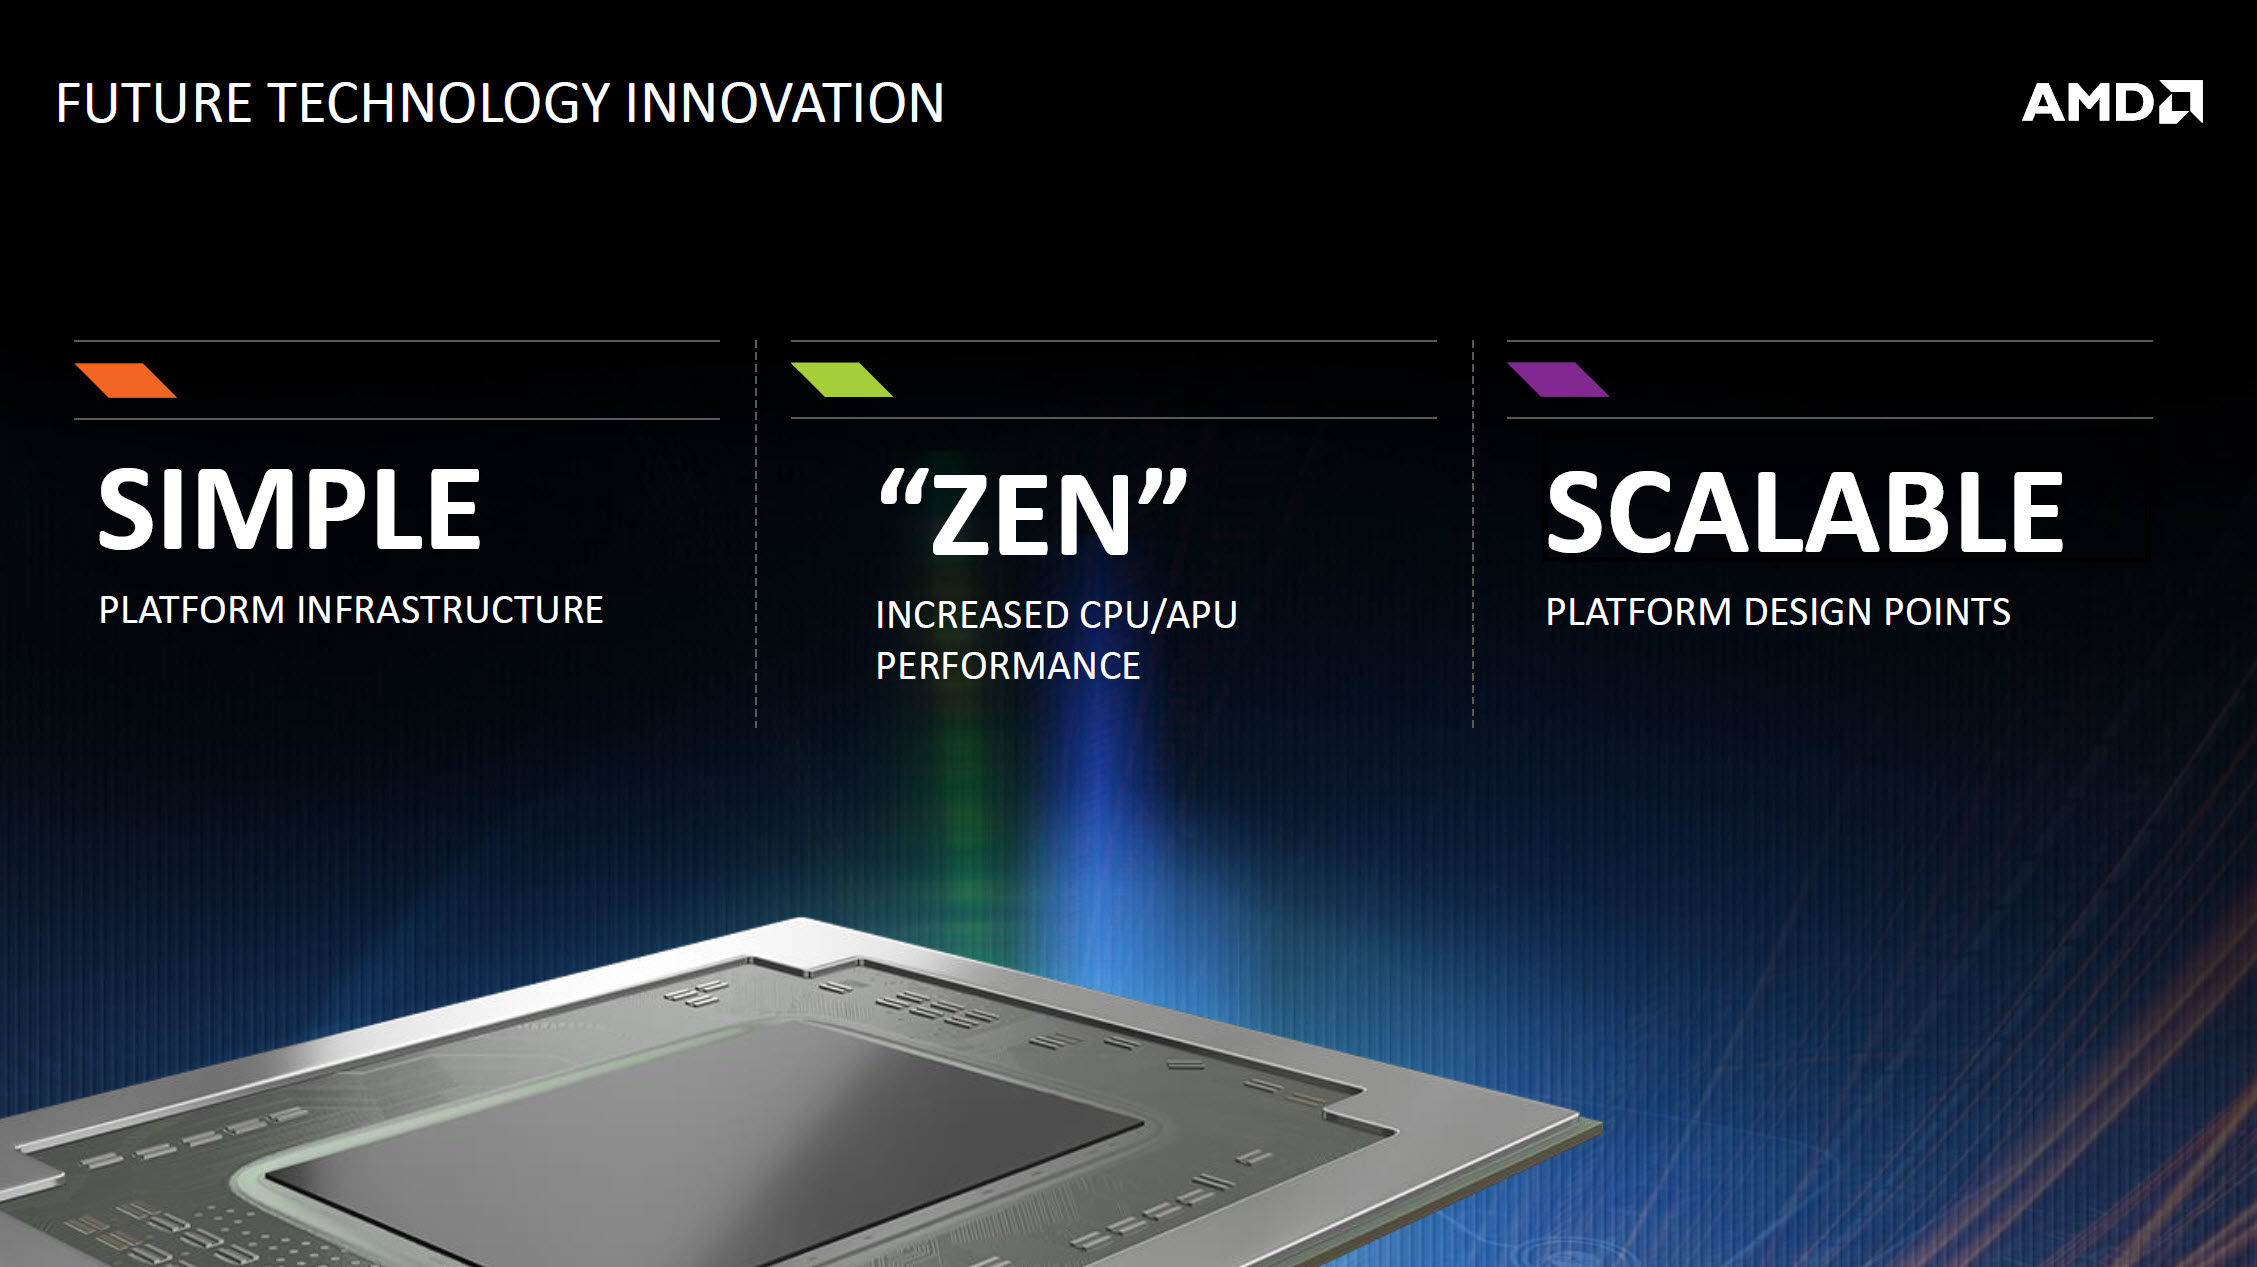 AMD Simpe Zen Scalable